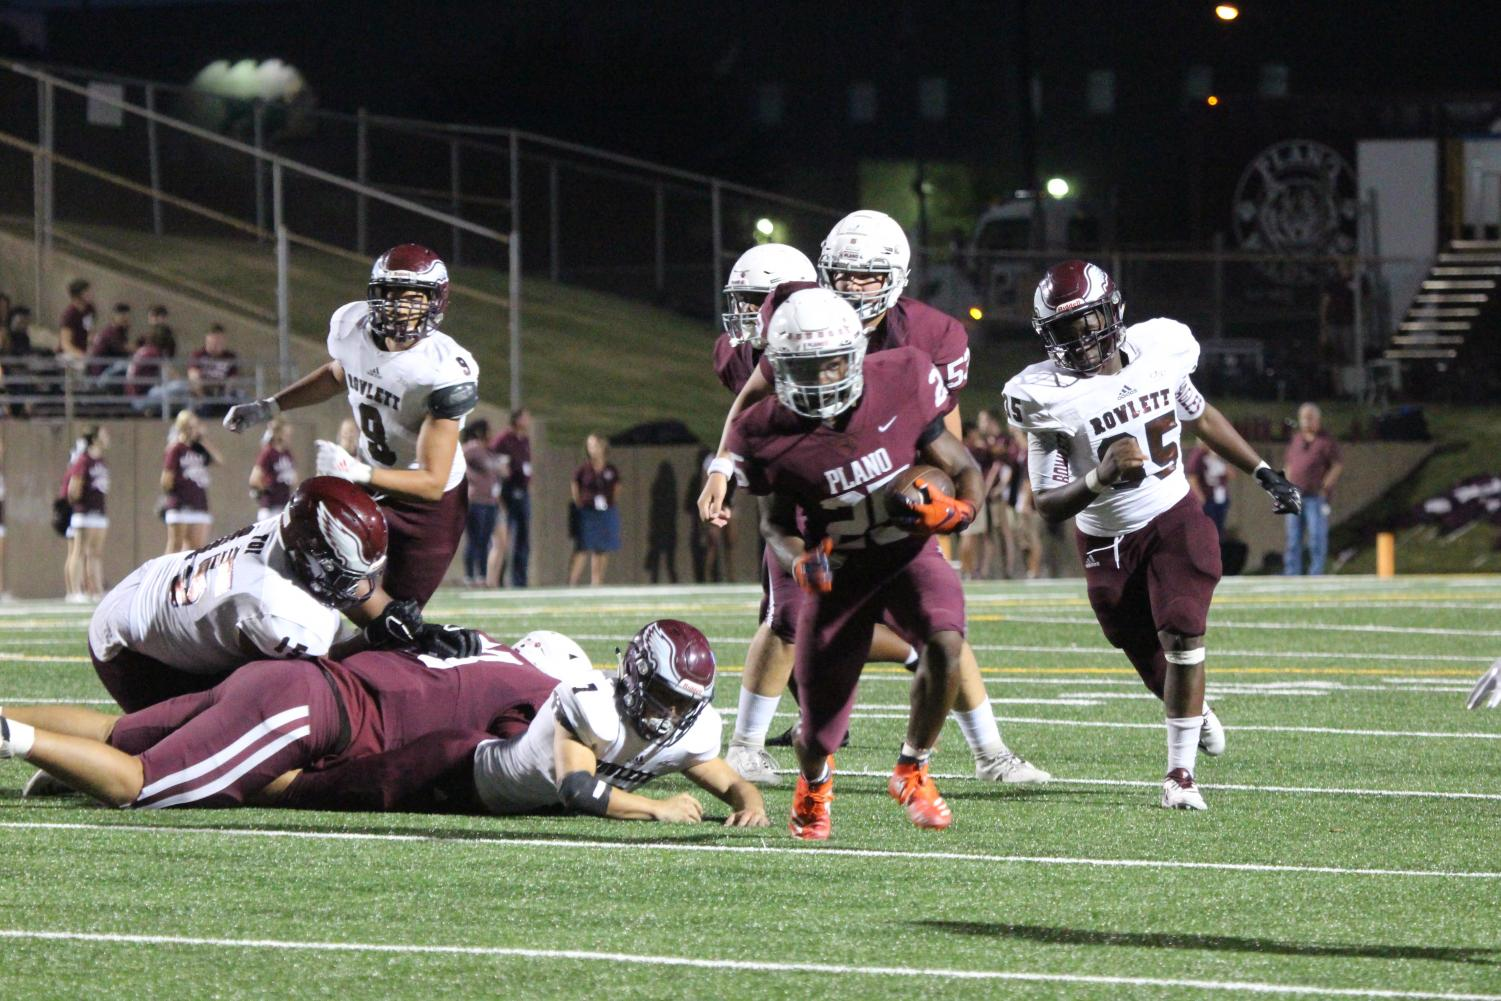 Running back Tylan Hines running the ball down the field in the Plano vs. Rowlett game.